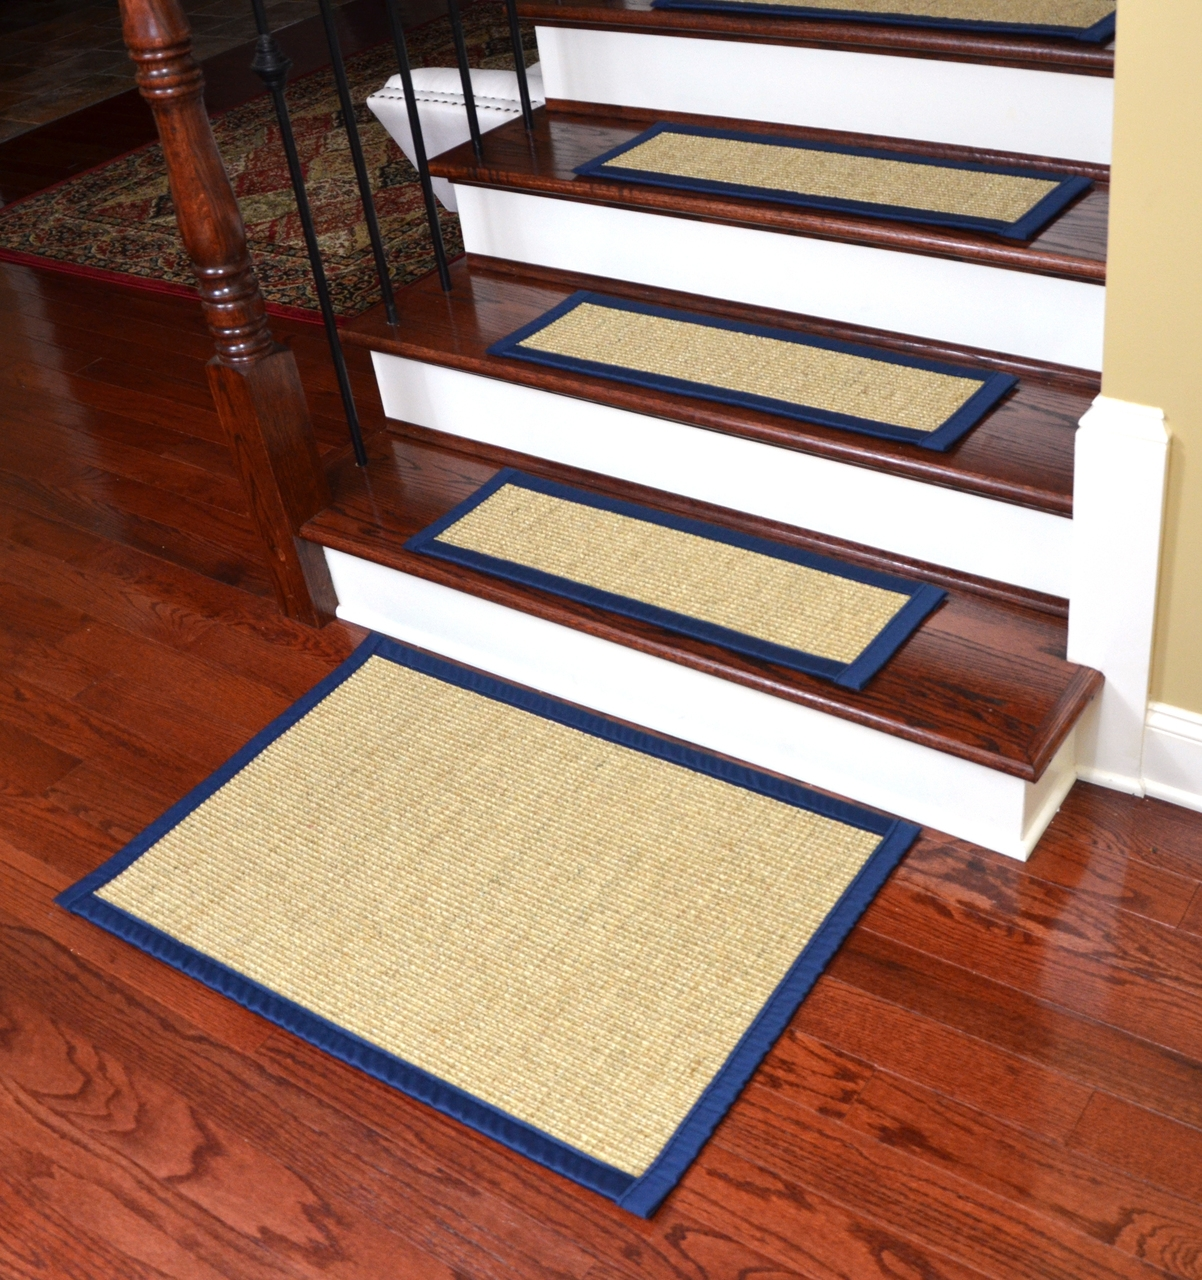 Dean Desertnavy Blue Non Slip Tape Free Pet Friendly Stair With Regard To Carpet Stair Treads Set Of  (Image 7 of 15)